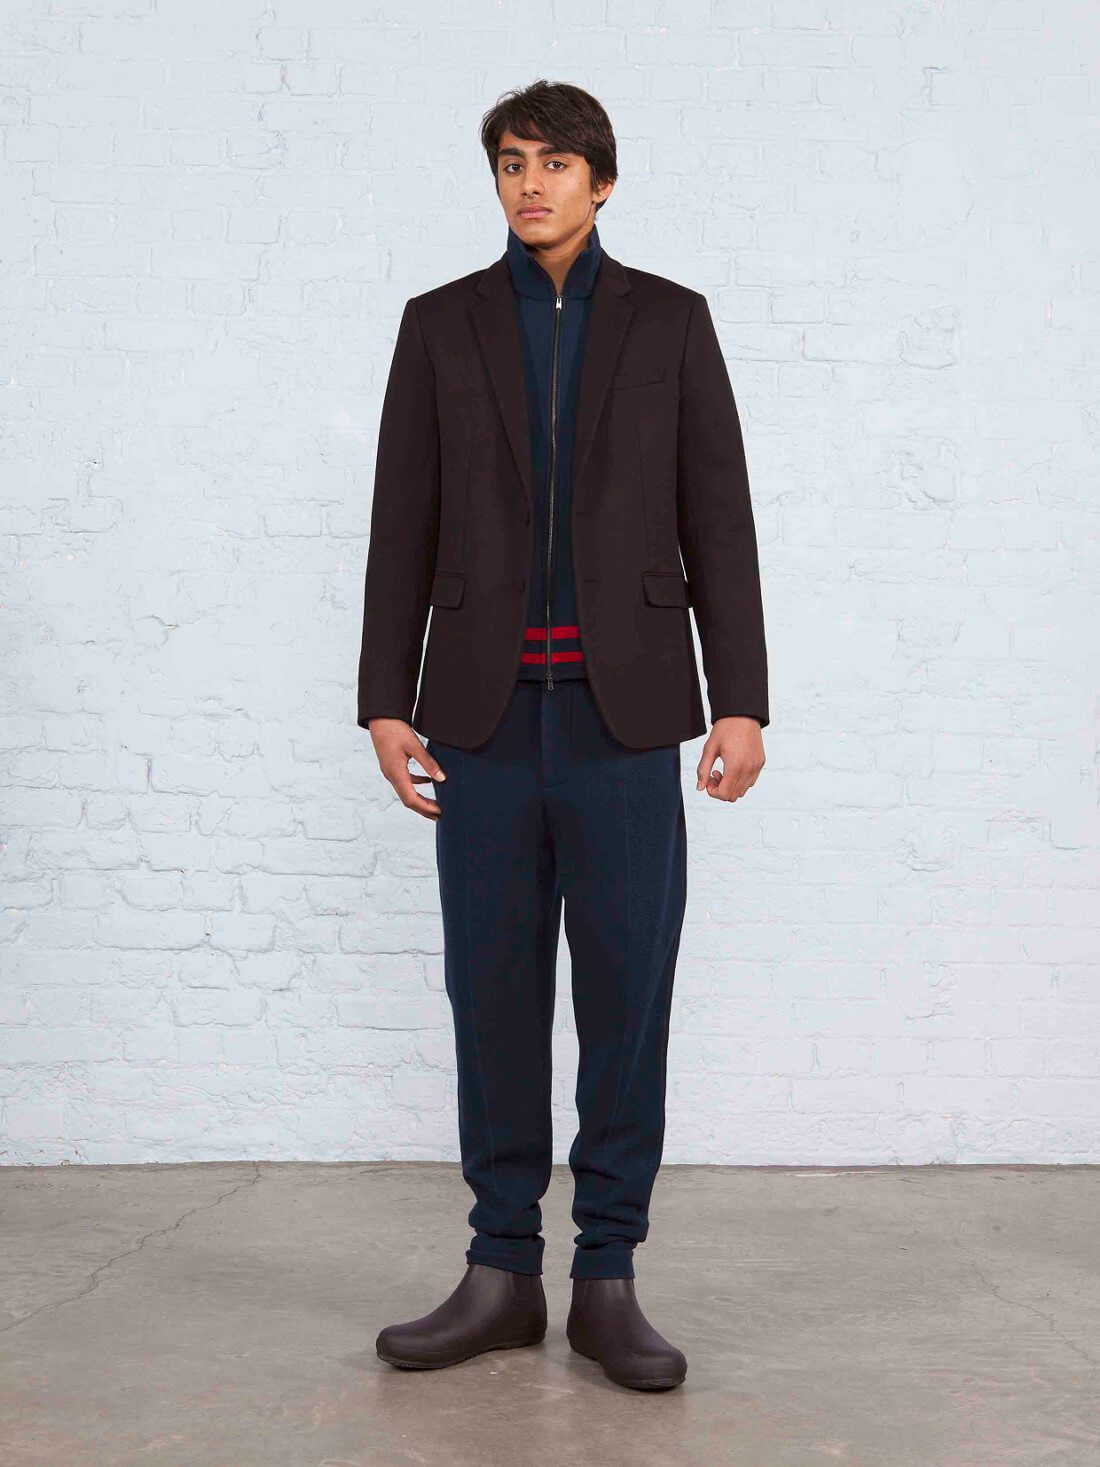 mw_aw17_look-15